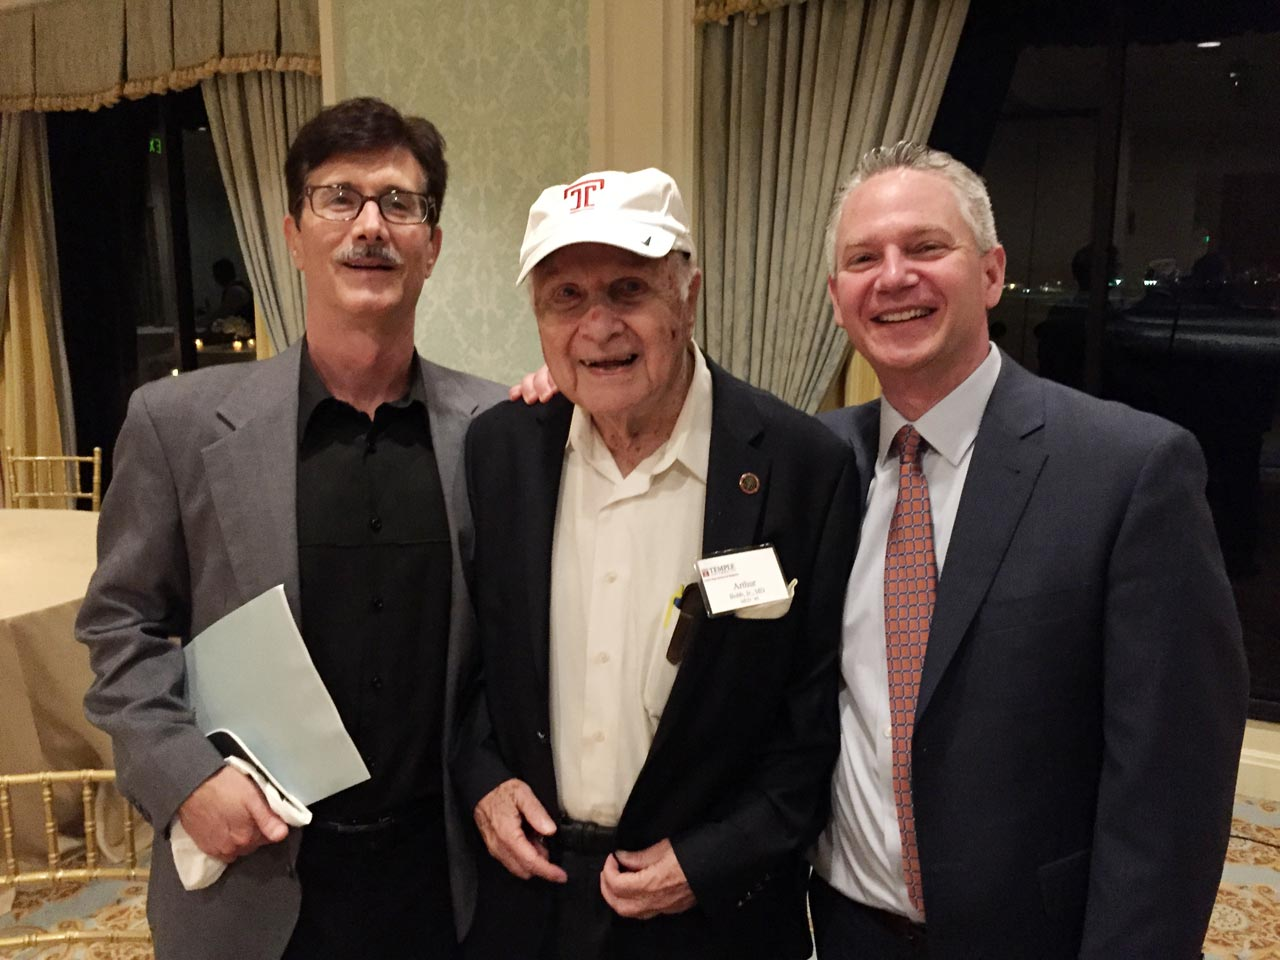 Fred and Arthur Bobb with the Assistant VP for Temple University at the Breakers Hotel in West Palm Beach, Florida.